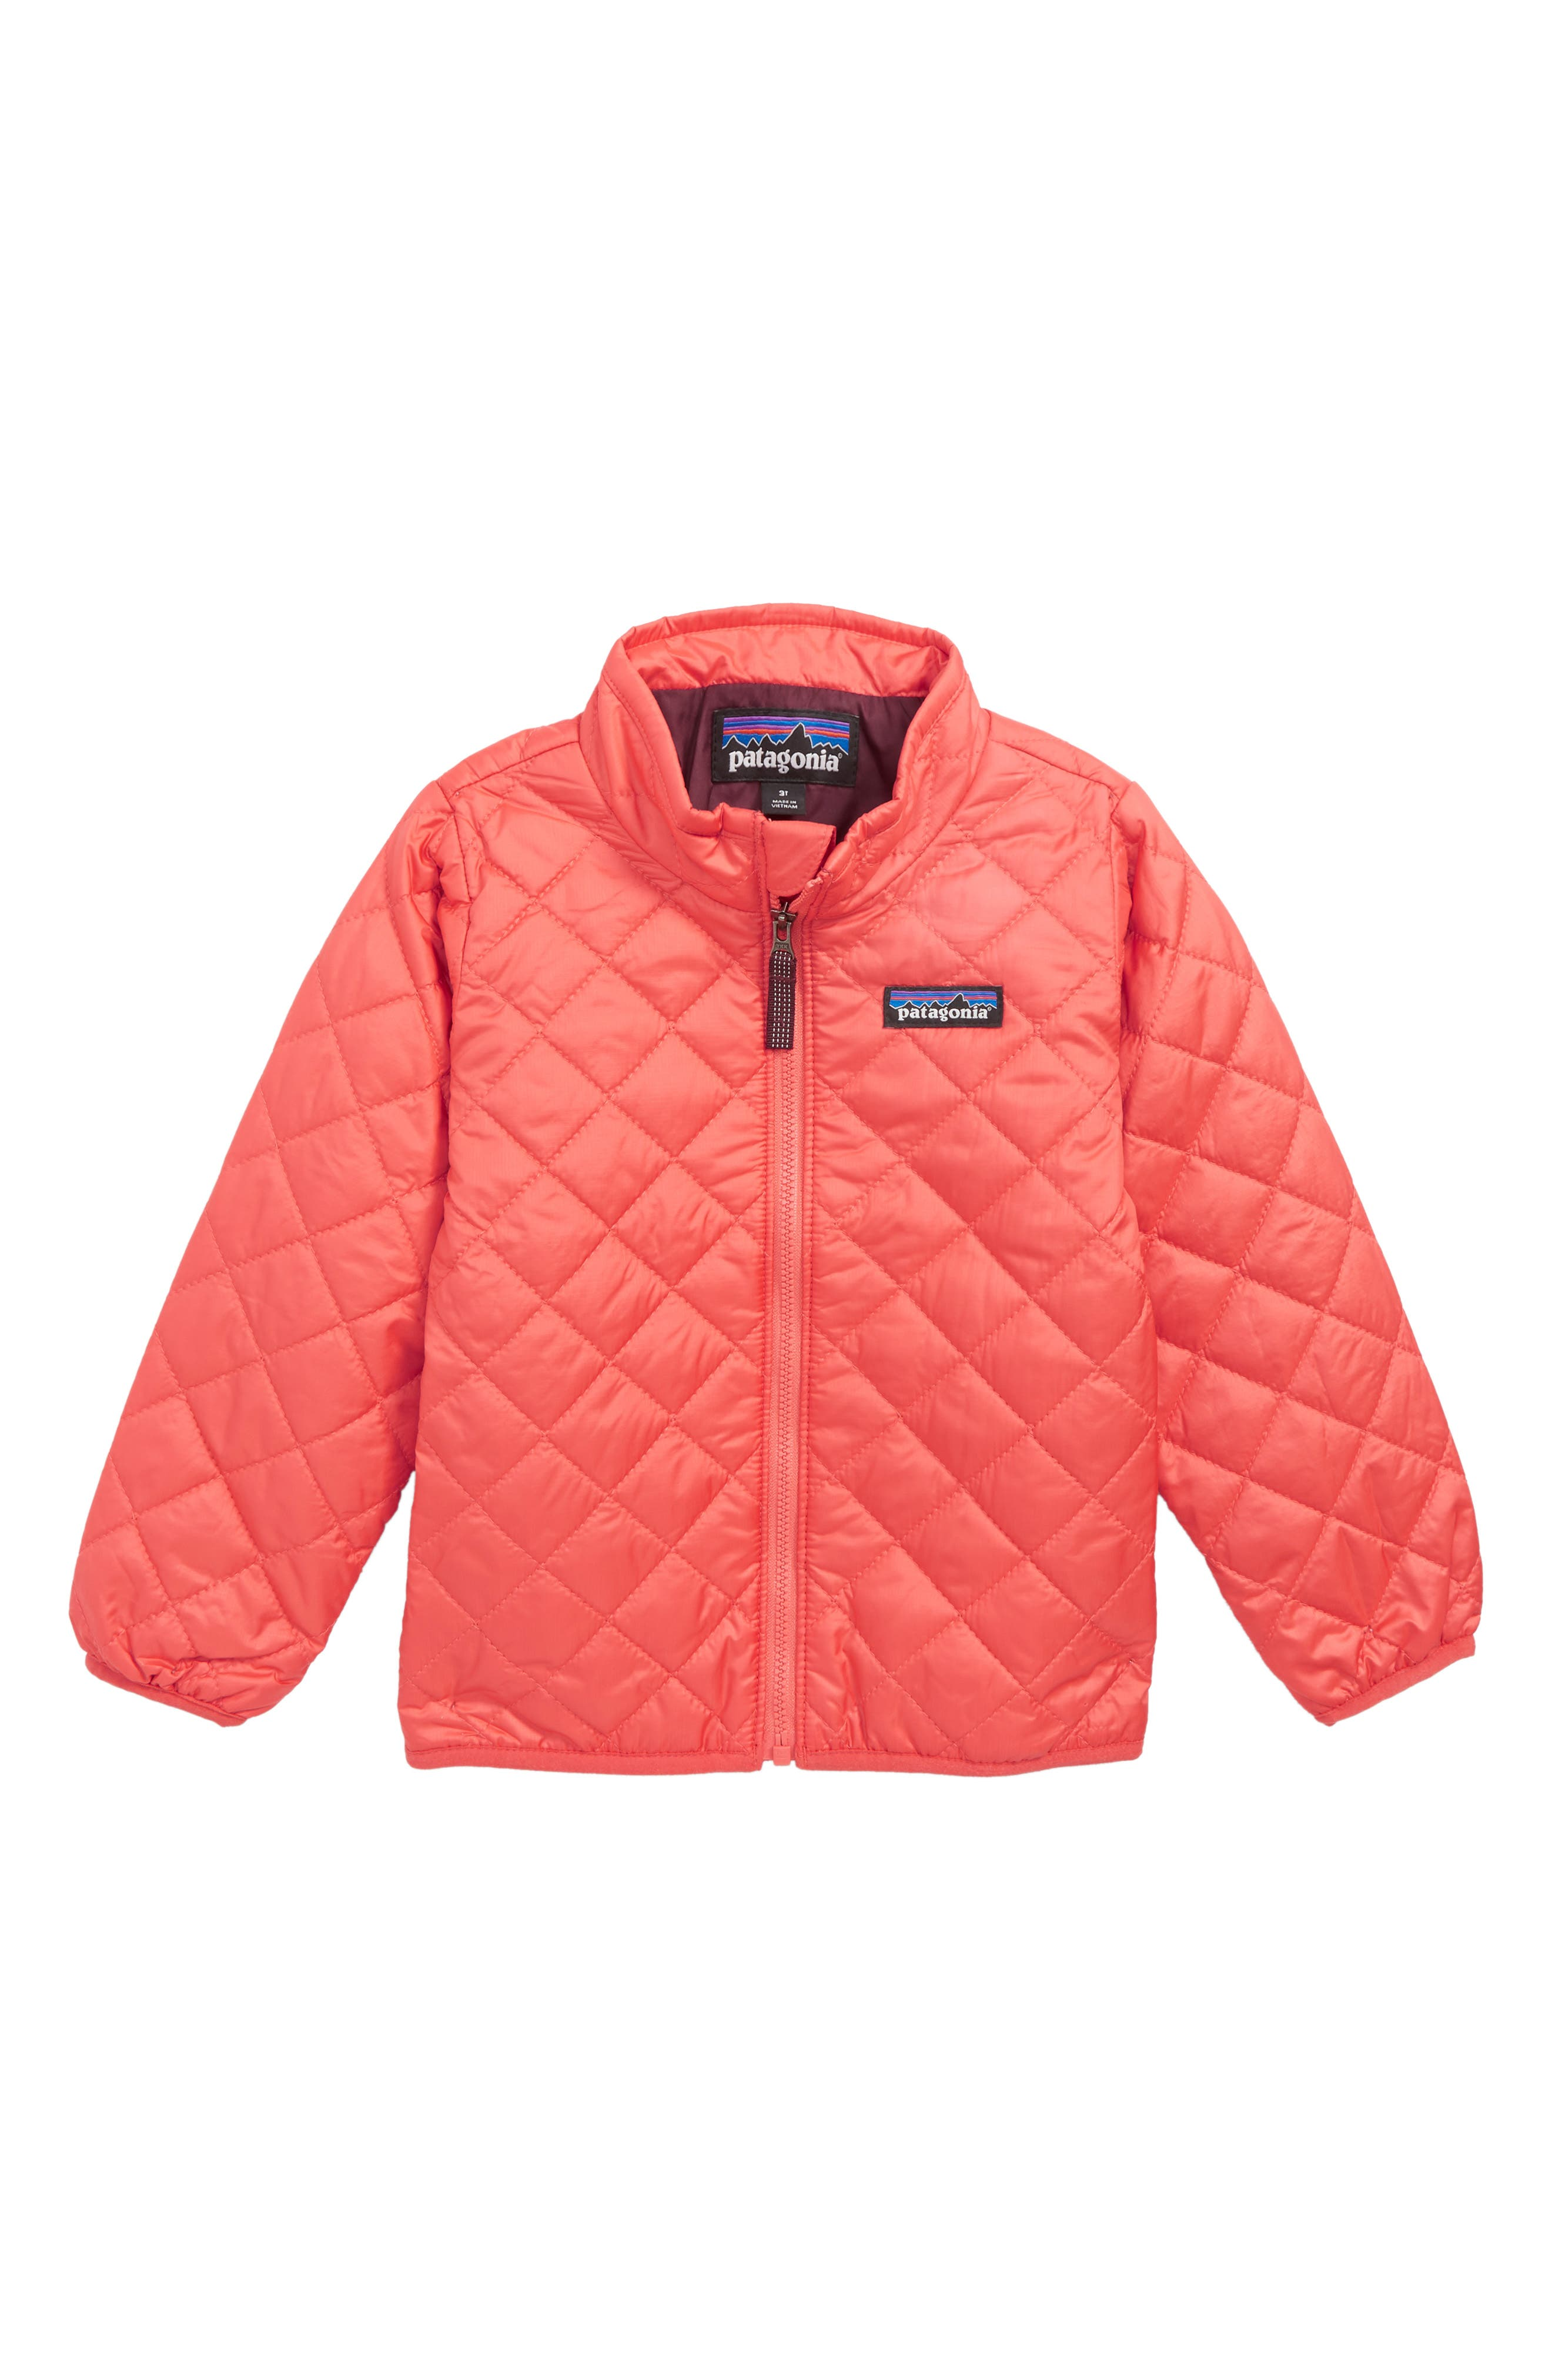 Nano Puff<sup>®</sup> Quilted Water Resistant Jacket,                             Main thumbnail 1, color,                             SPICED CORAL